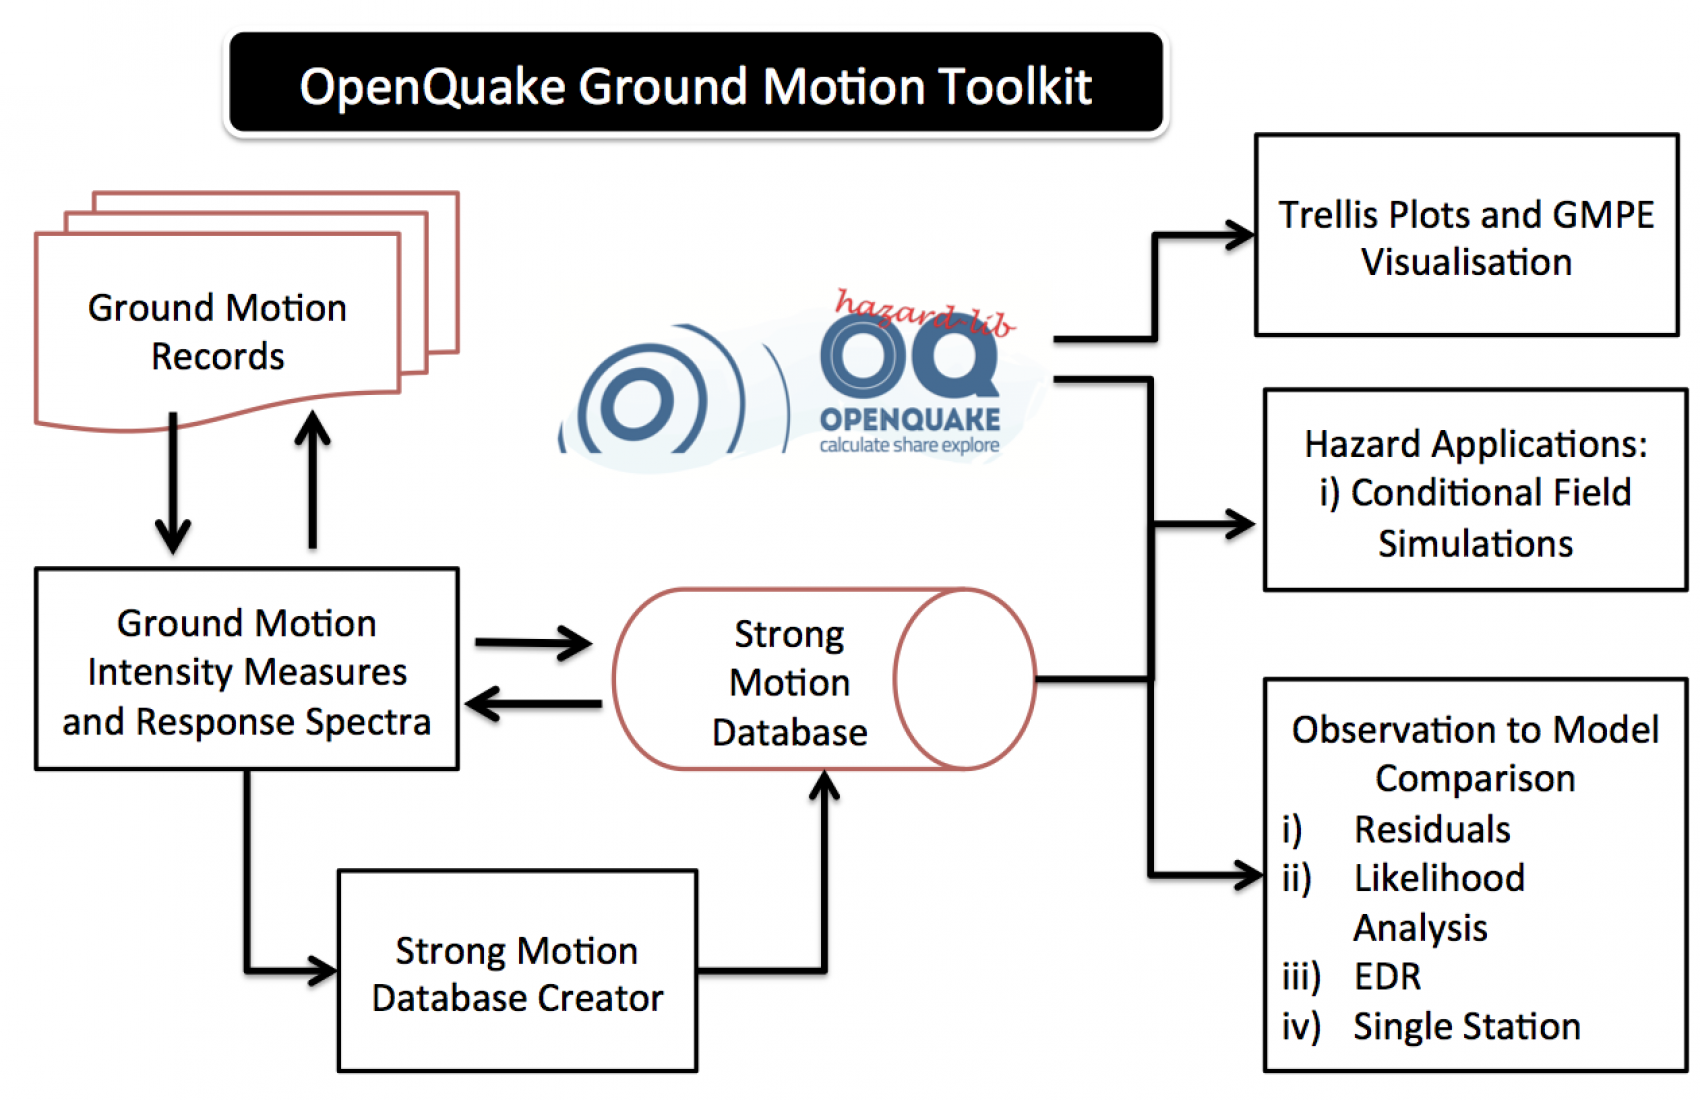 OpenQuake Ground Motion Toolkit